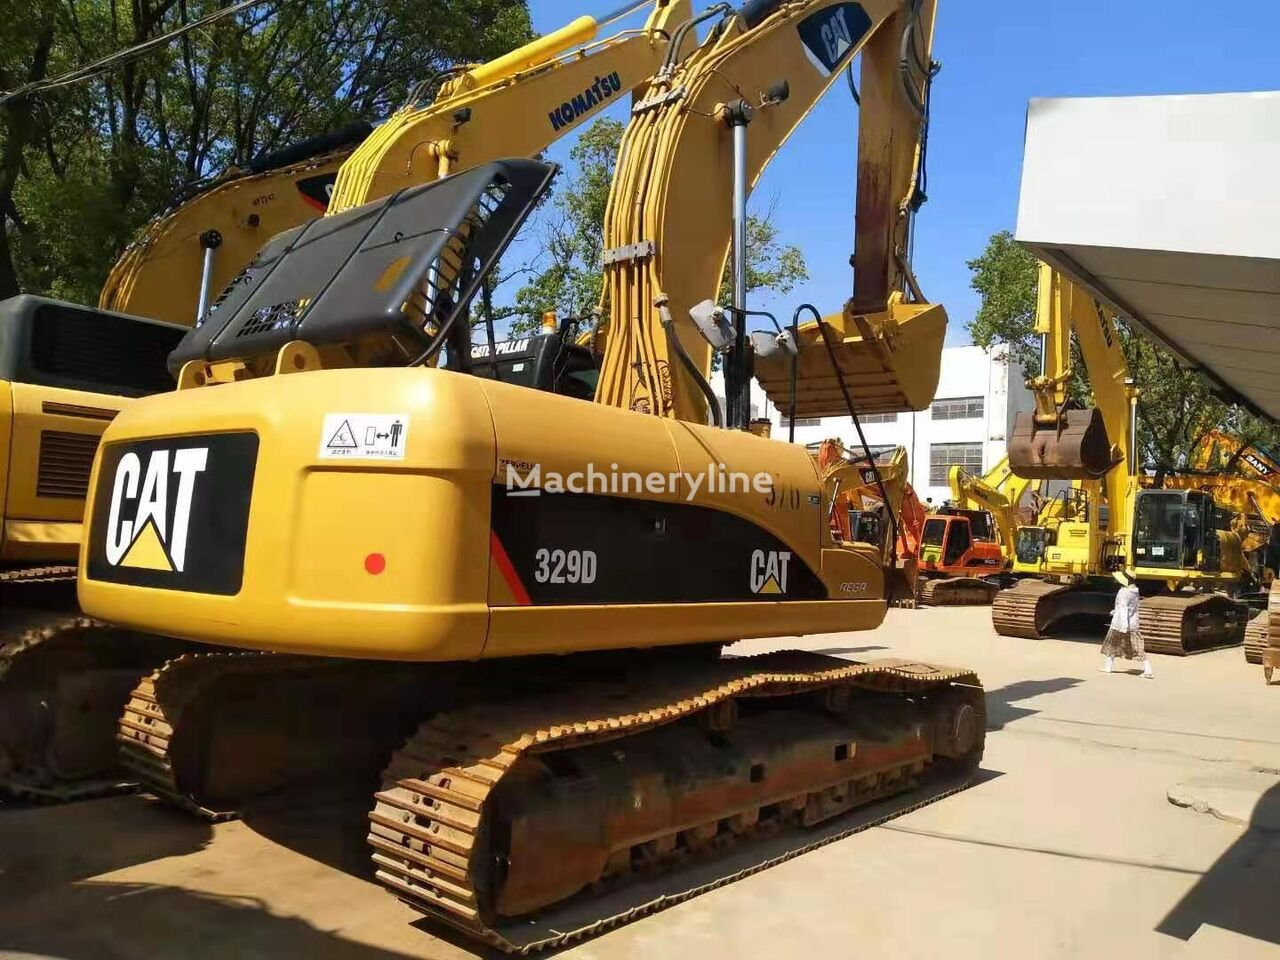 CATERPILLAR 329D  tracked excavator